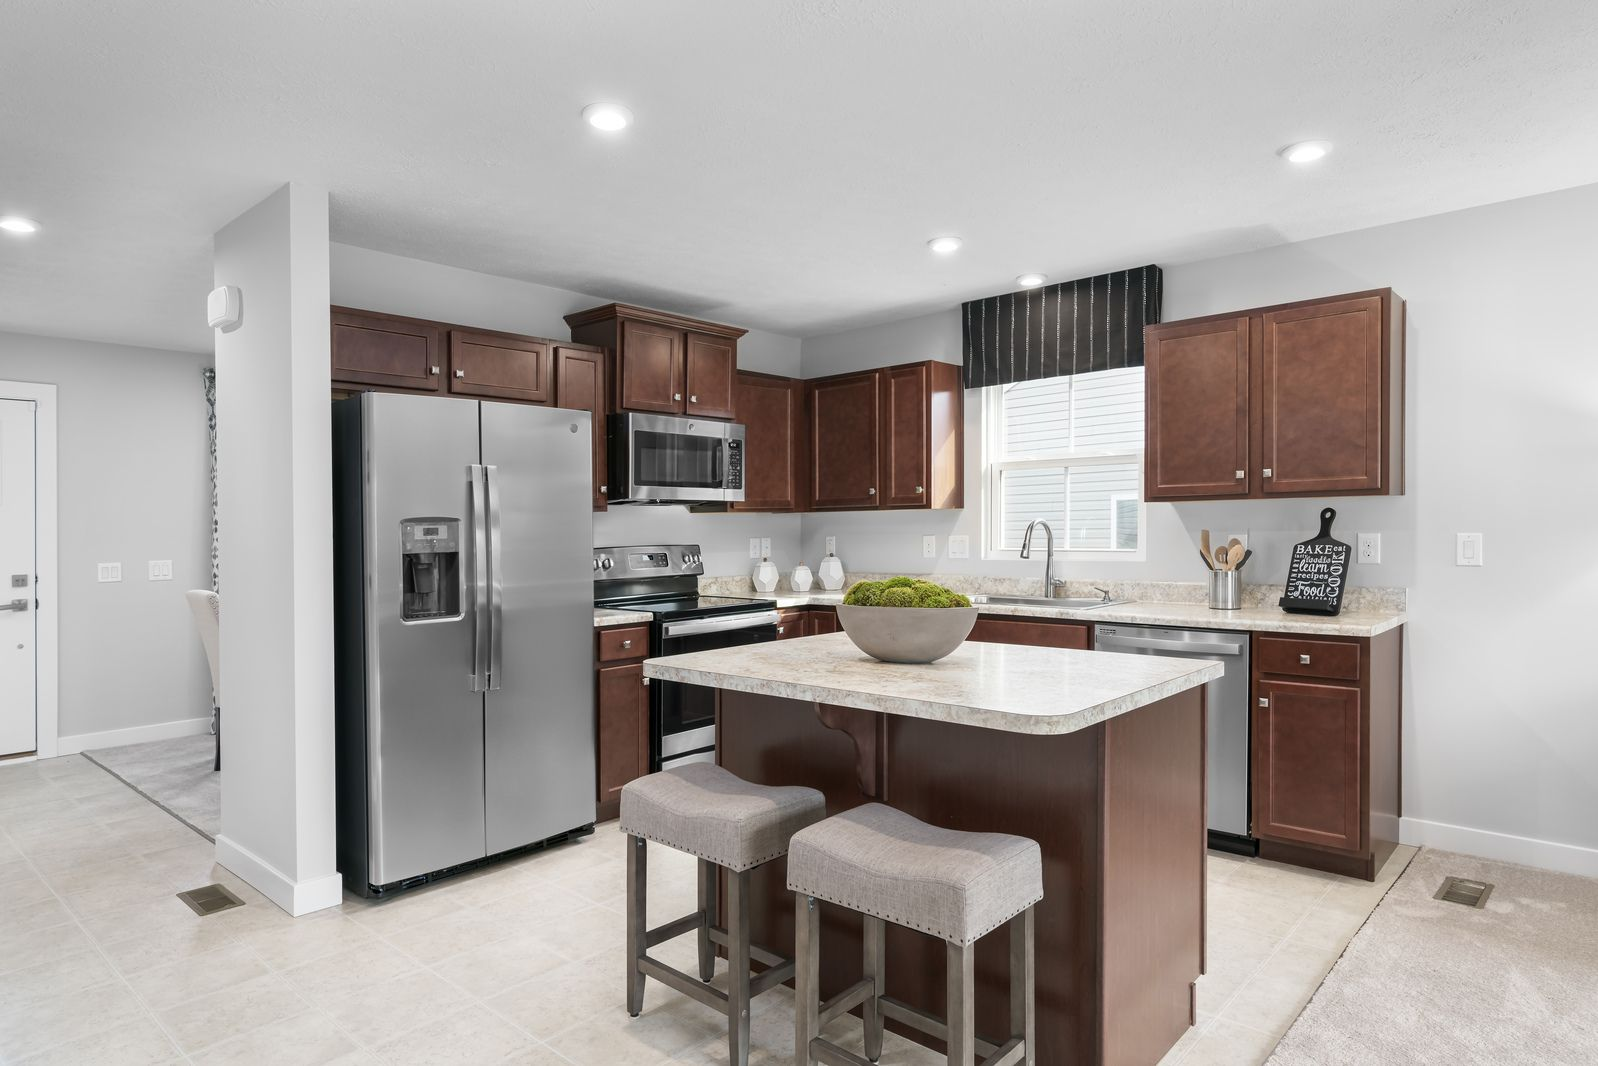 Kitchen featured in the Aruba Bay By Ryan Homes in Akron, OH